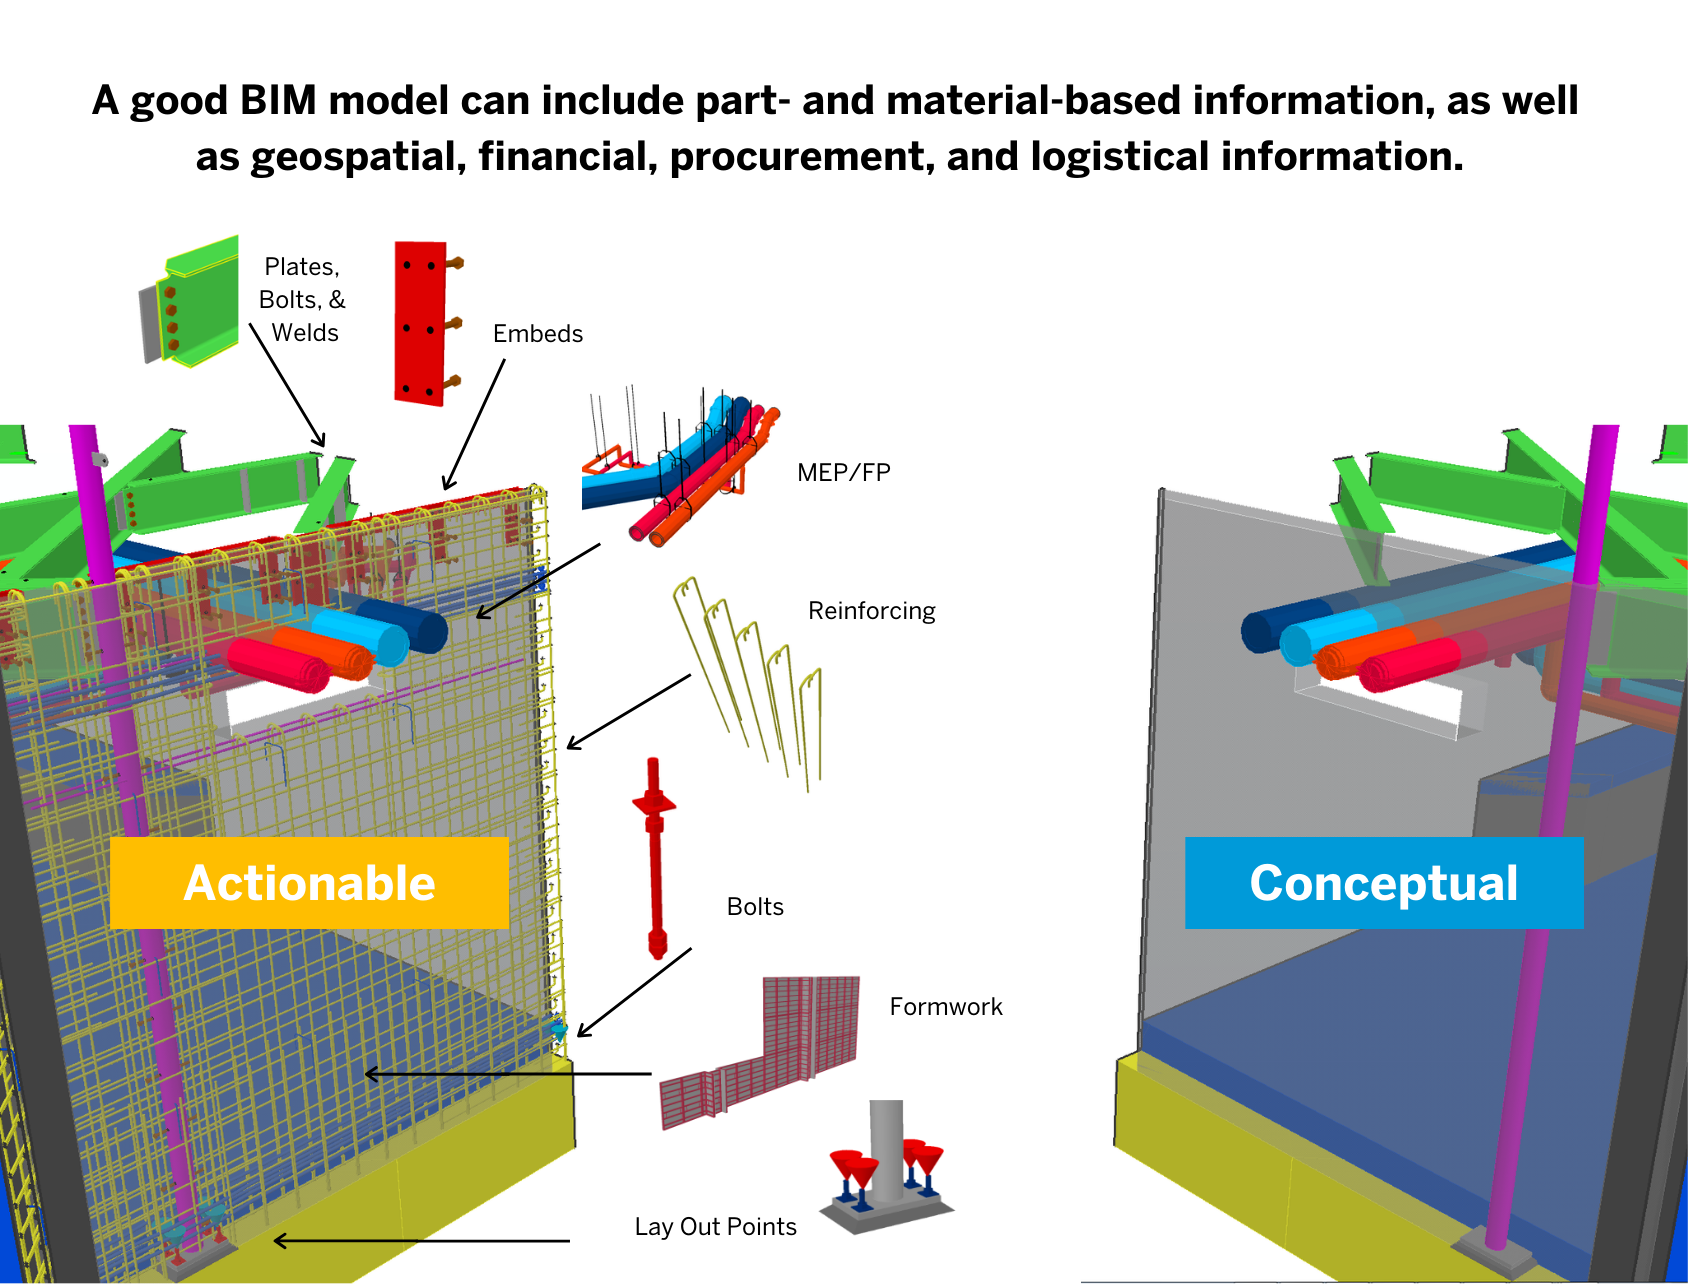 the difference between conceptual and constructible design in BIM models